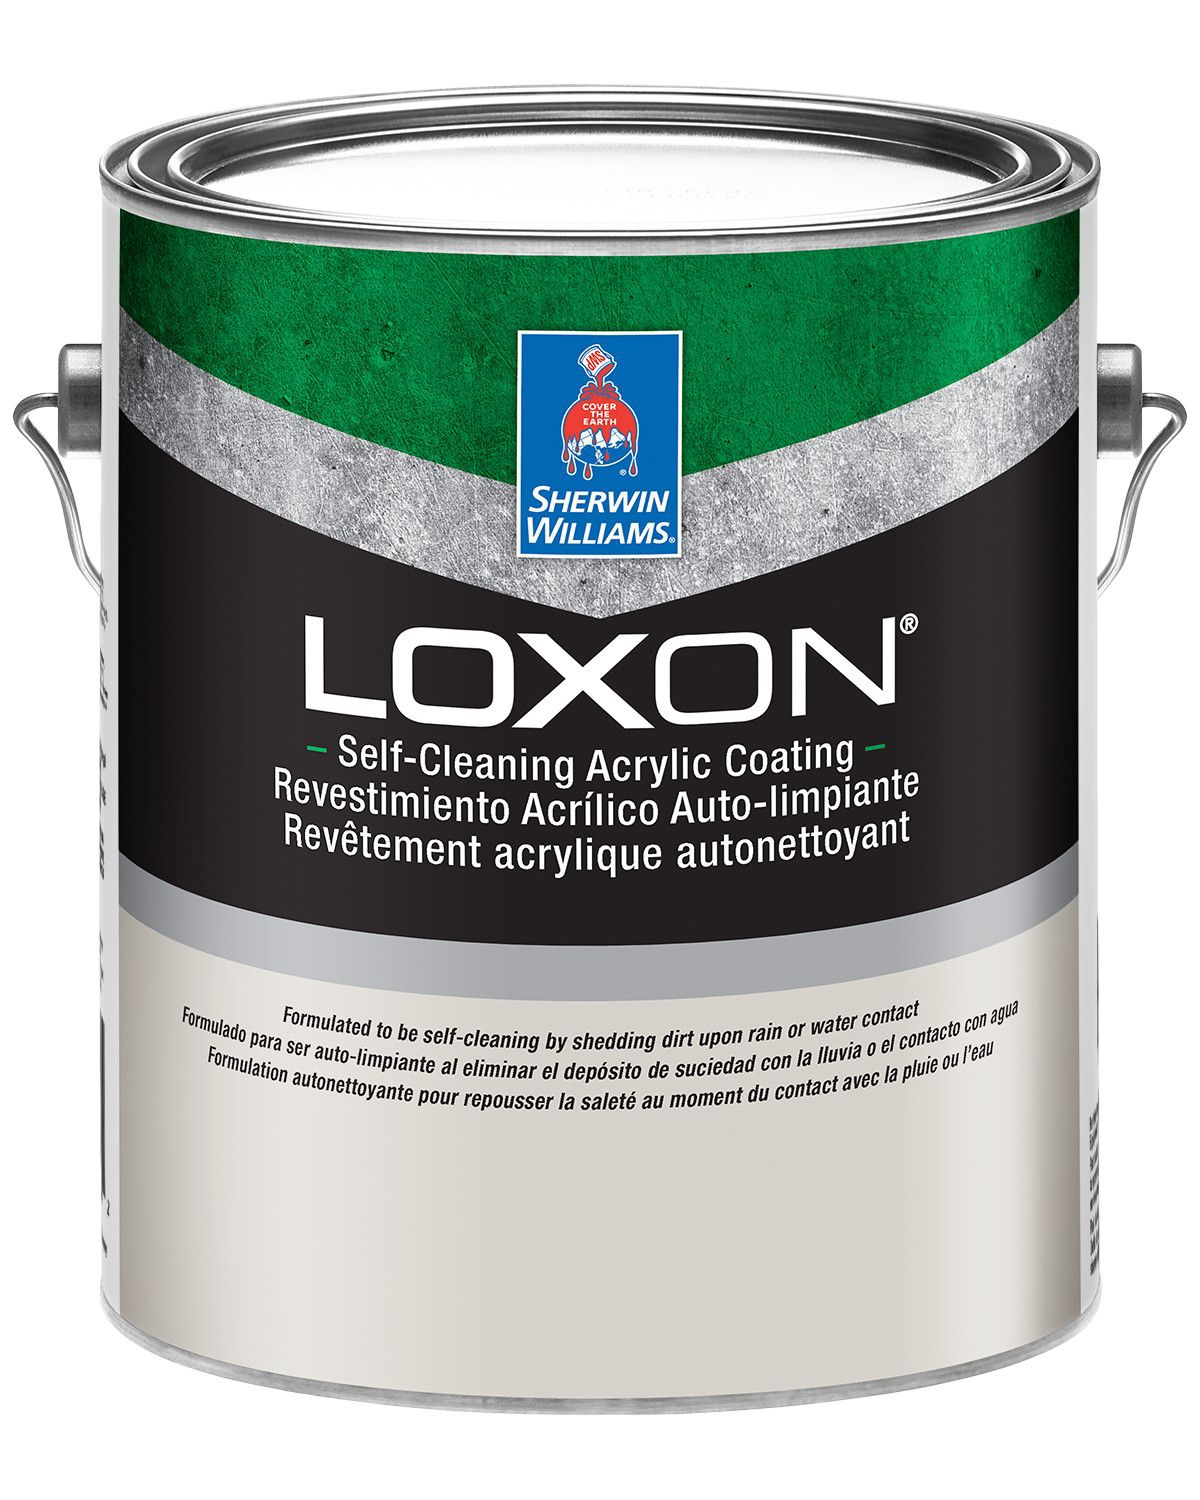 LOXON Self-Cleaning Acrylic Coating | SherwinWilliams